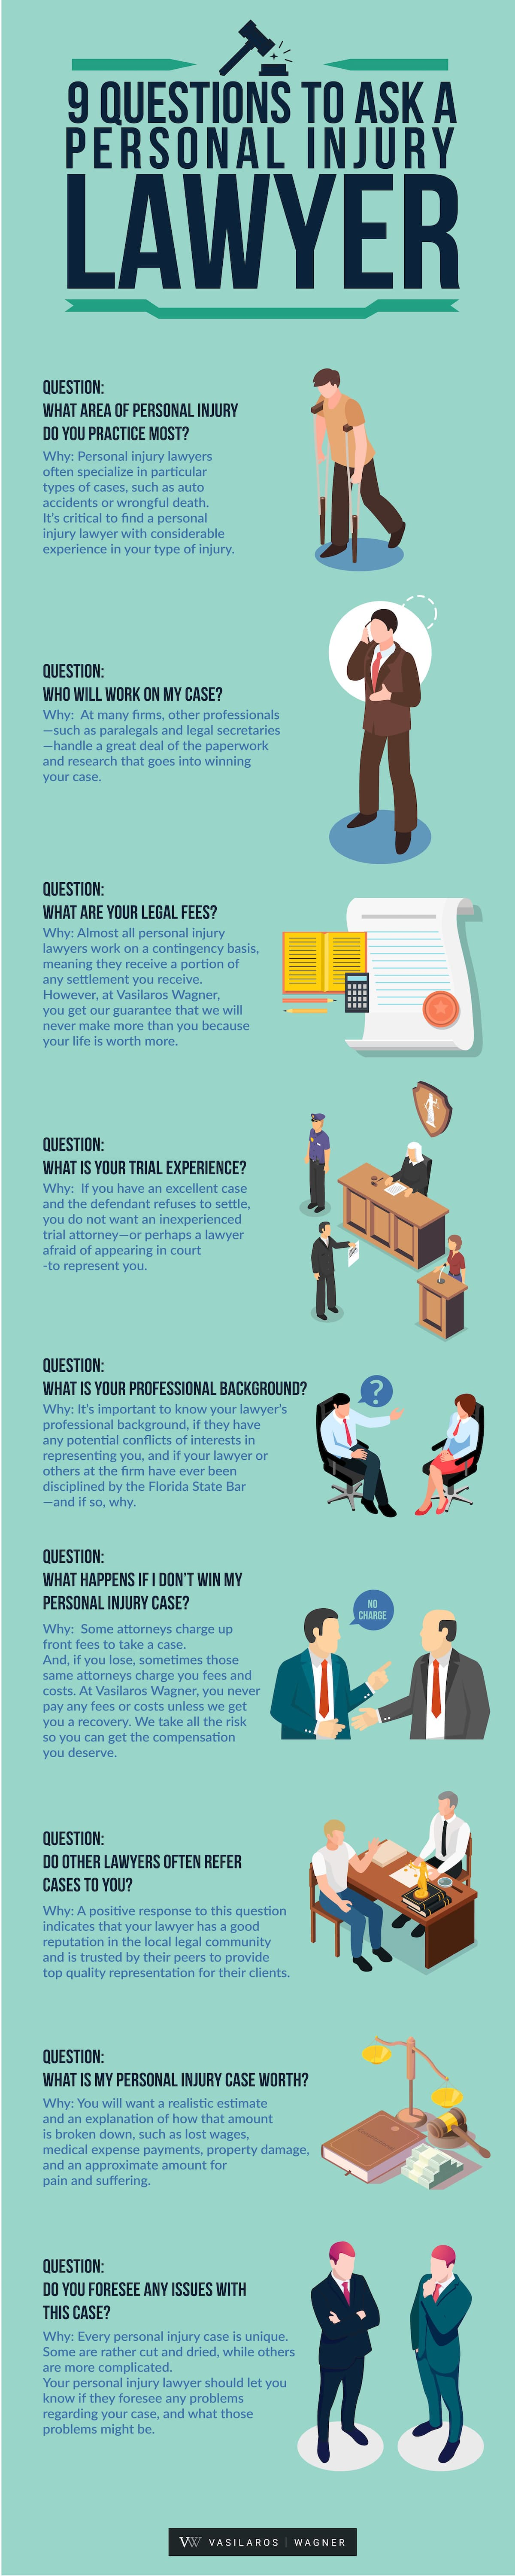 questions to ask a personal injury lawyer infographic